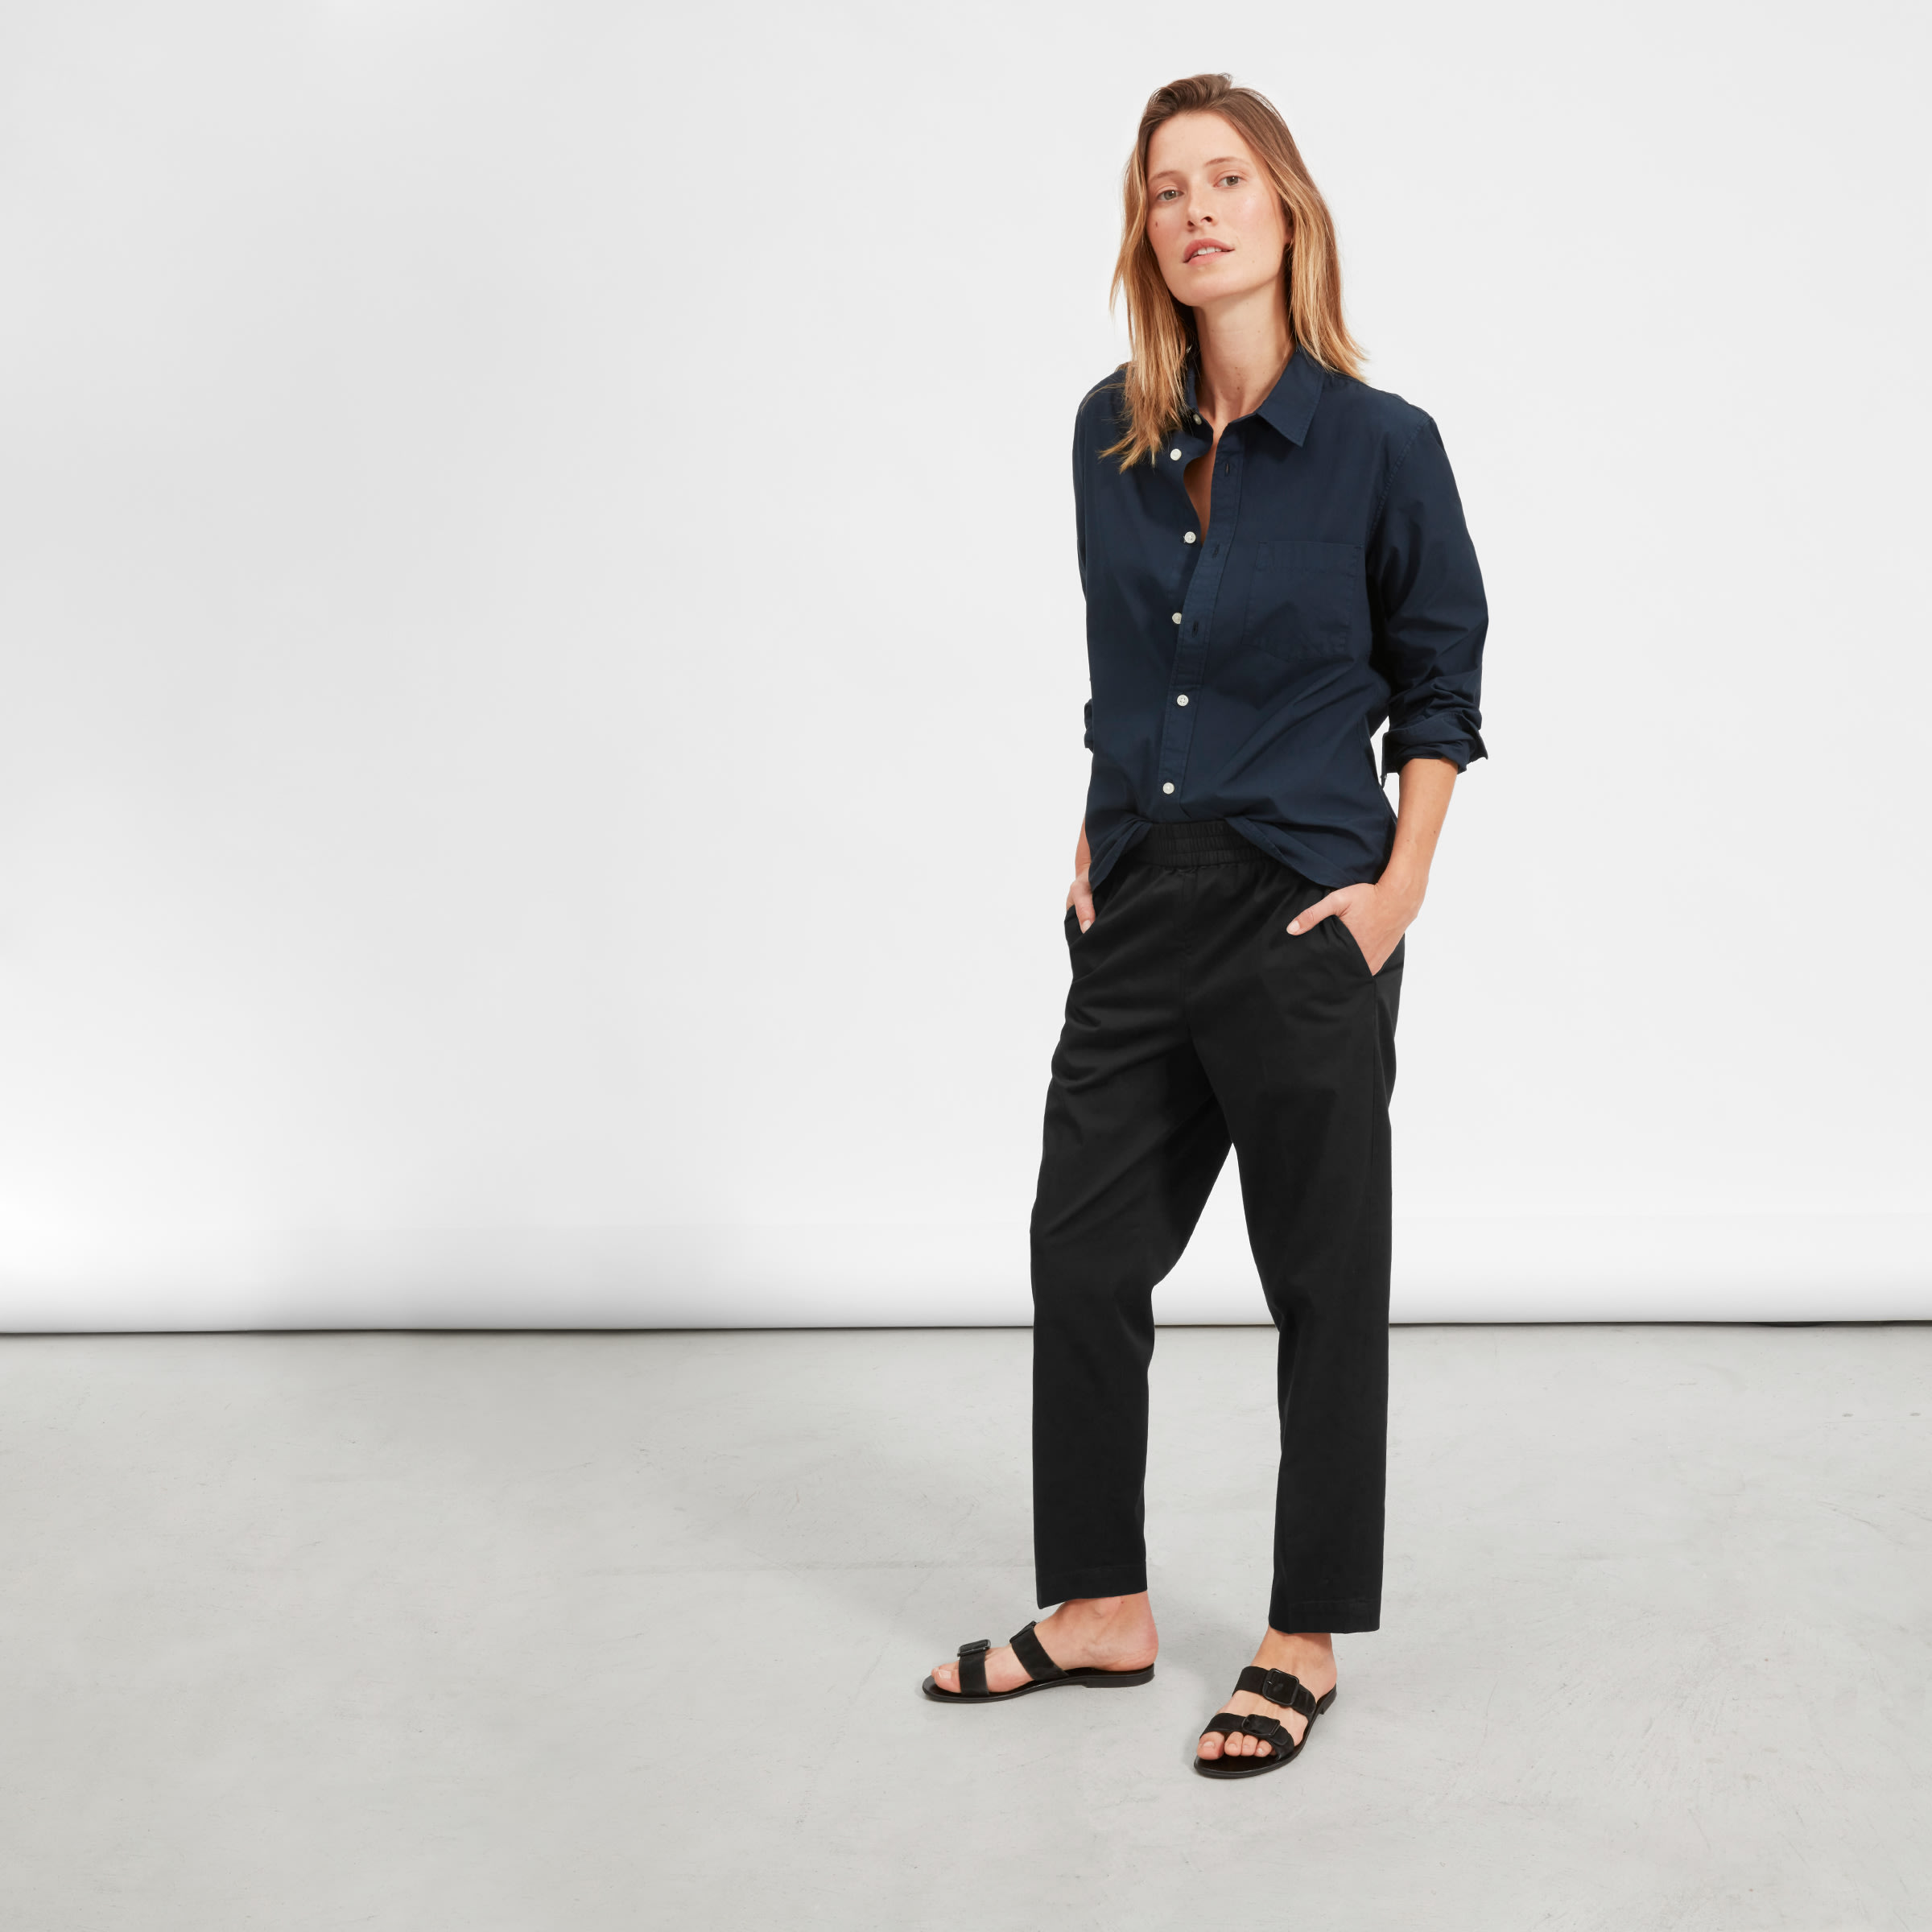 8b3097ac4912 Women's Pants | Everlane